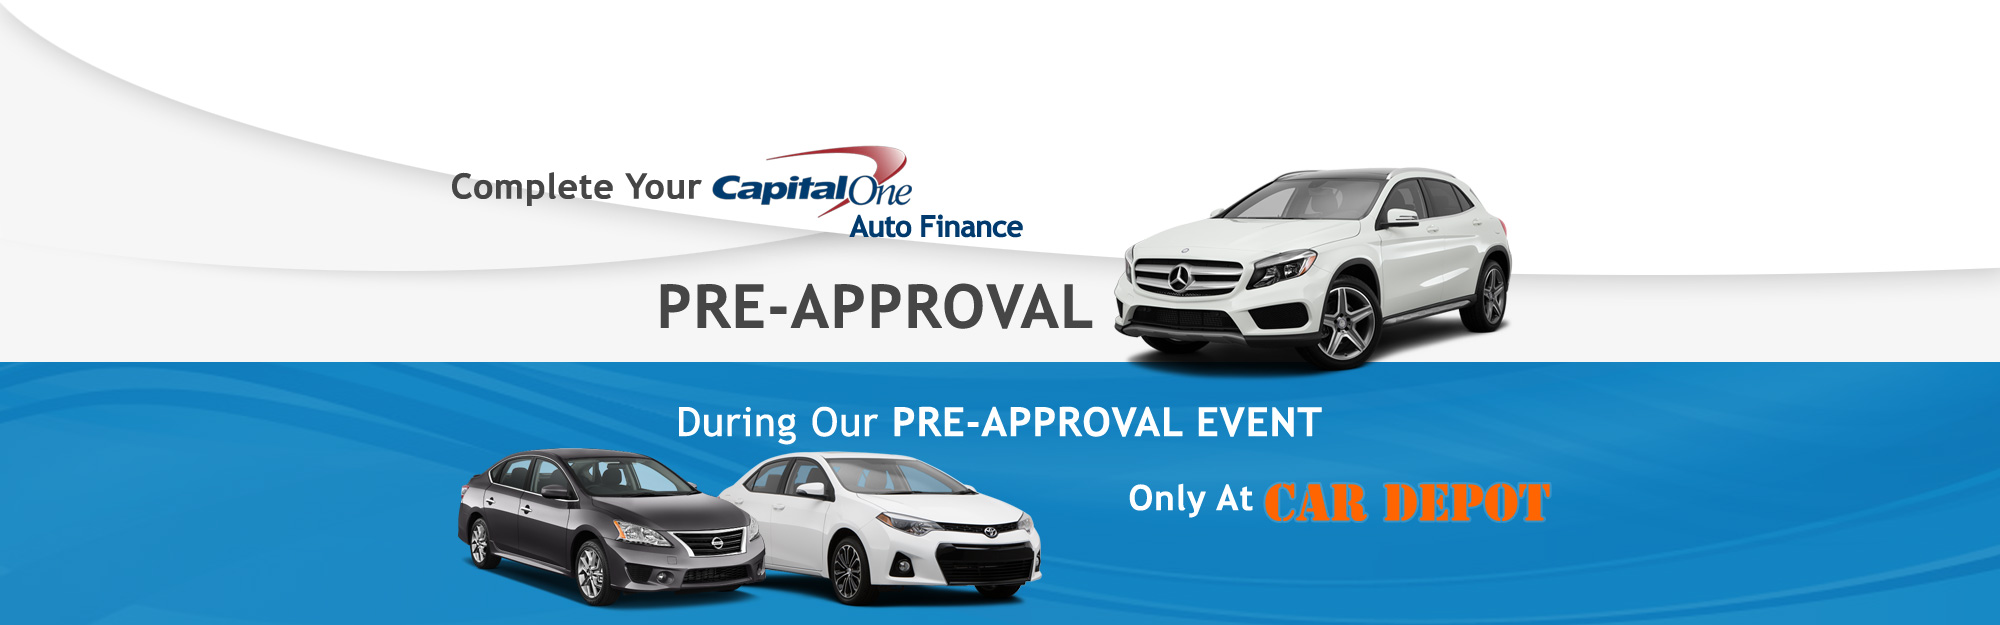 Capital One Pre-Approval